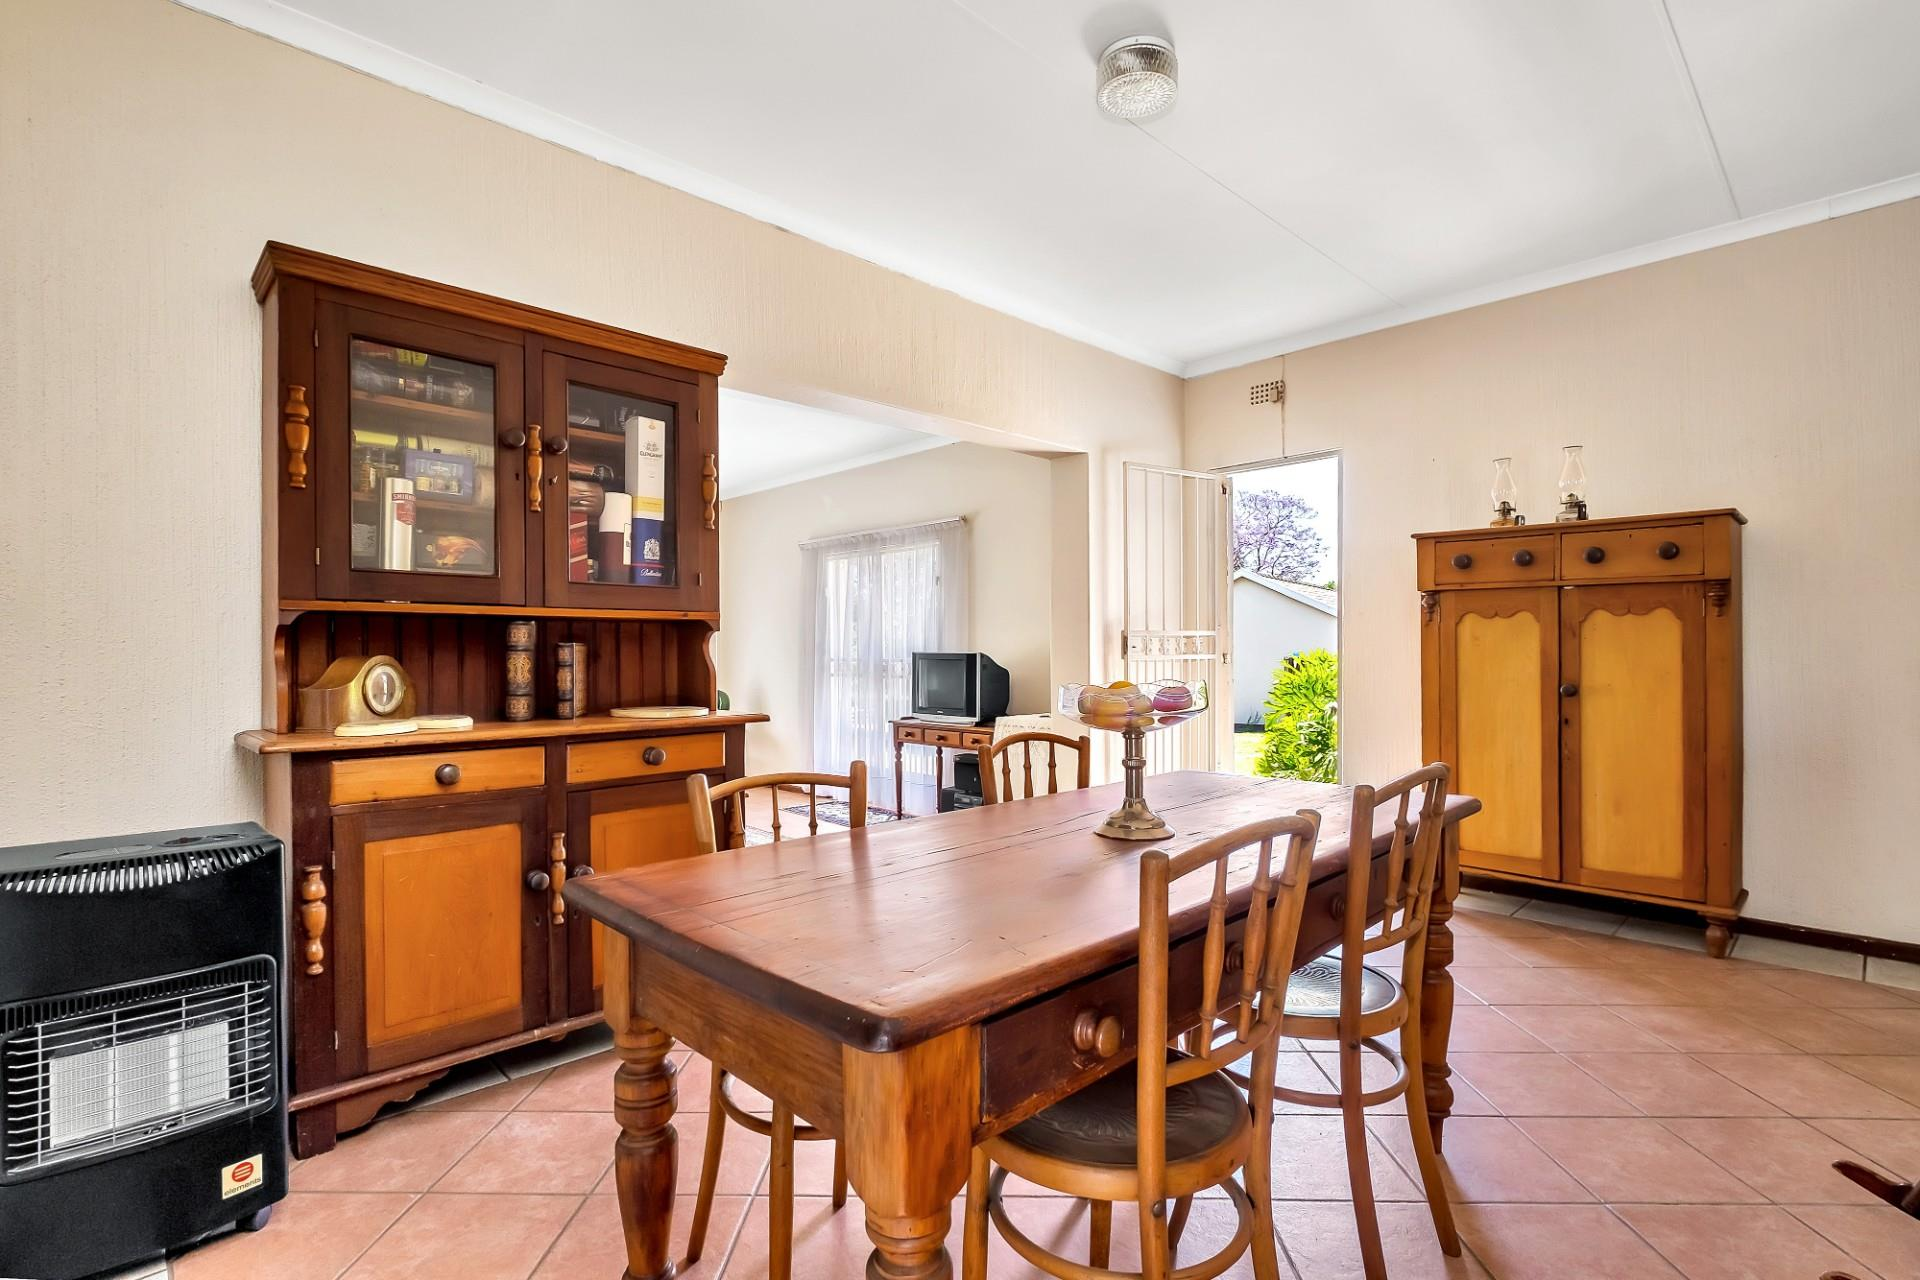 5 Bedroom House For Sale in Johannesburg North